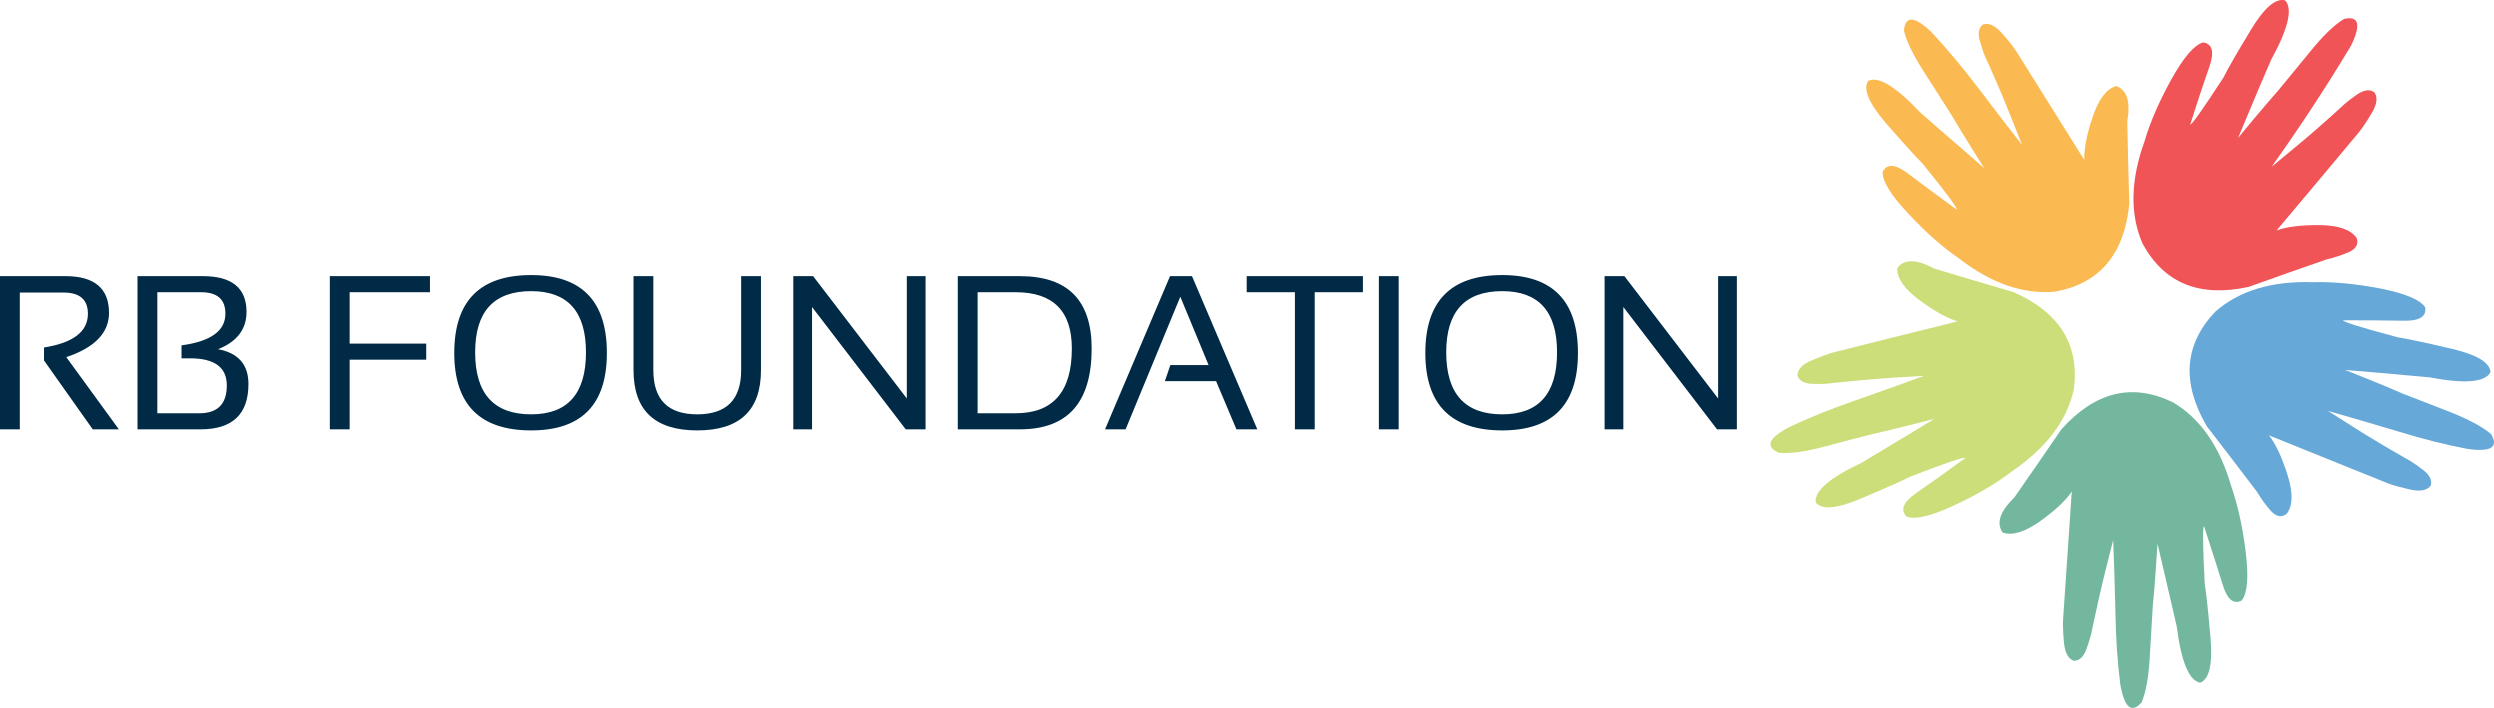 RB Foundation